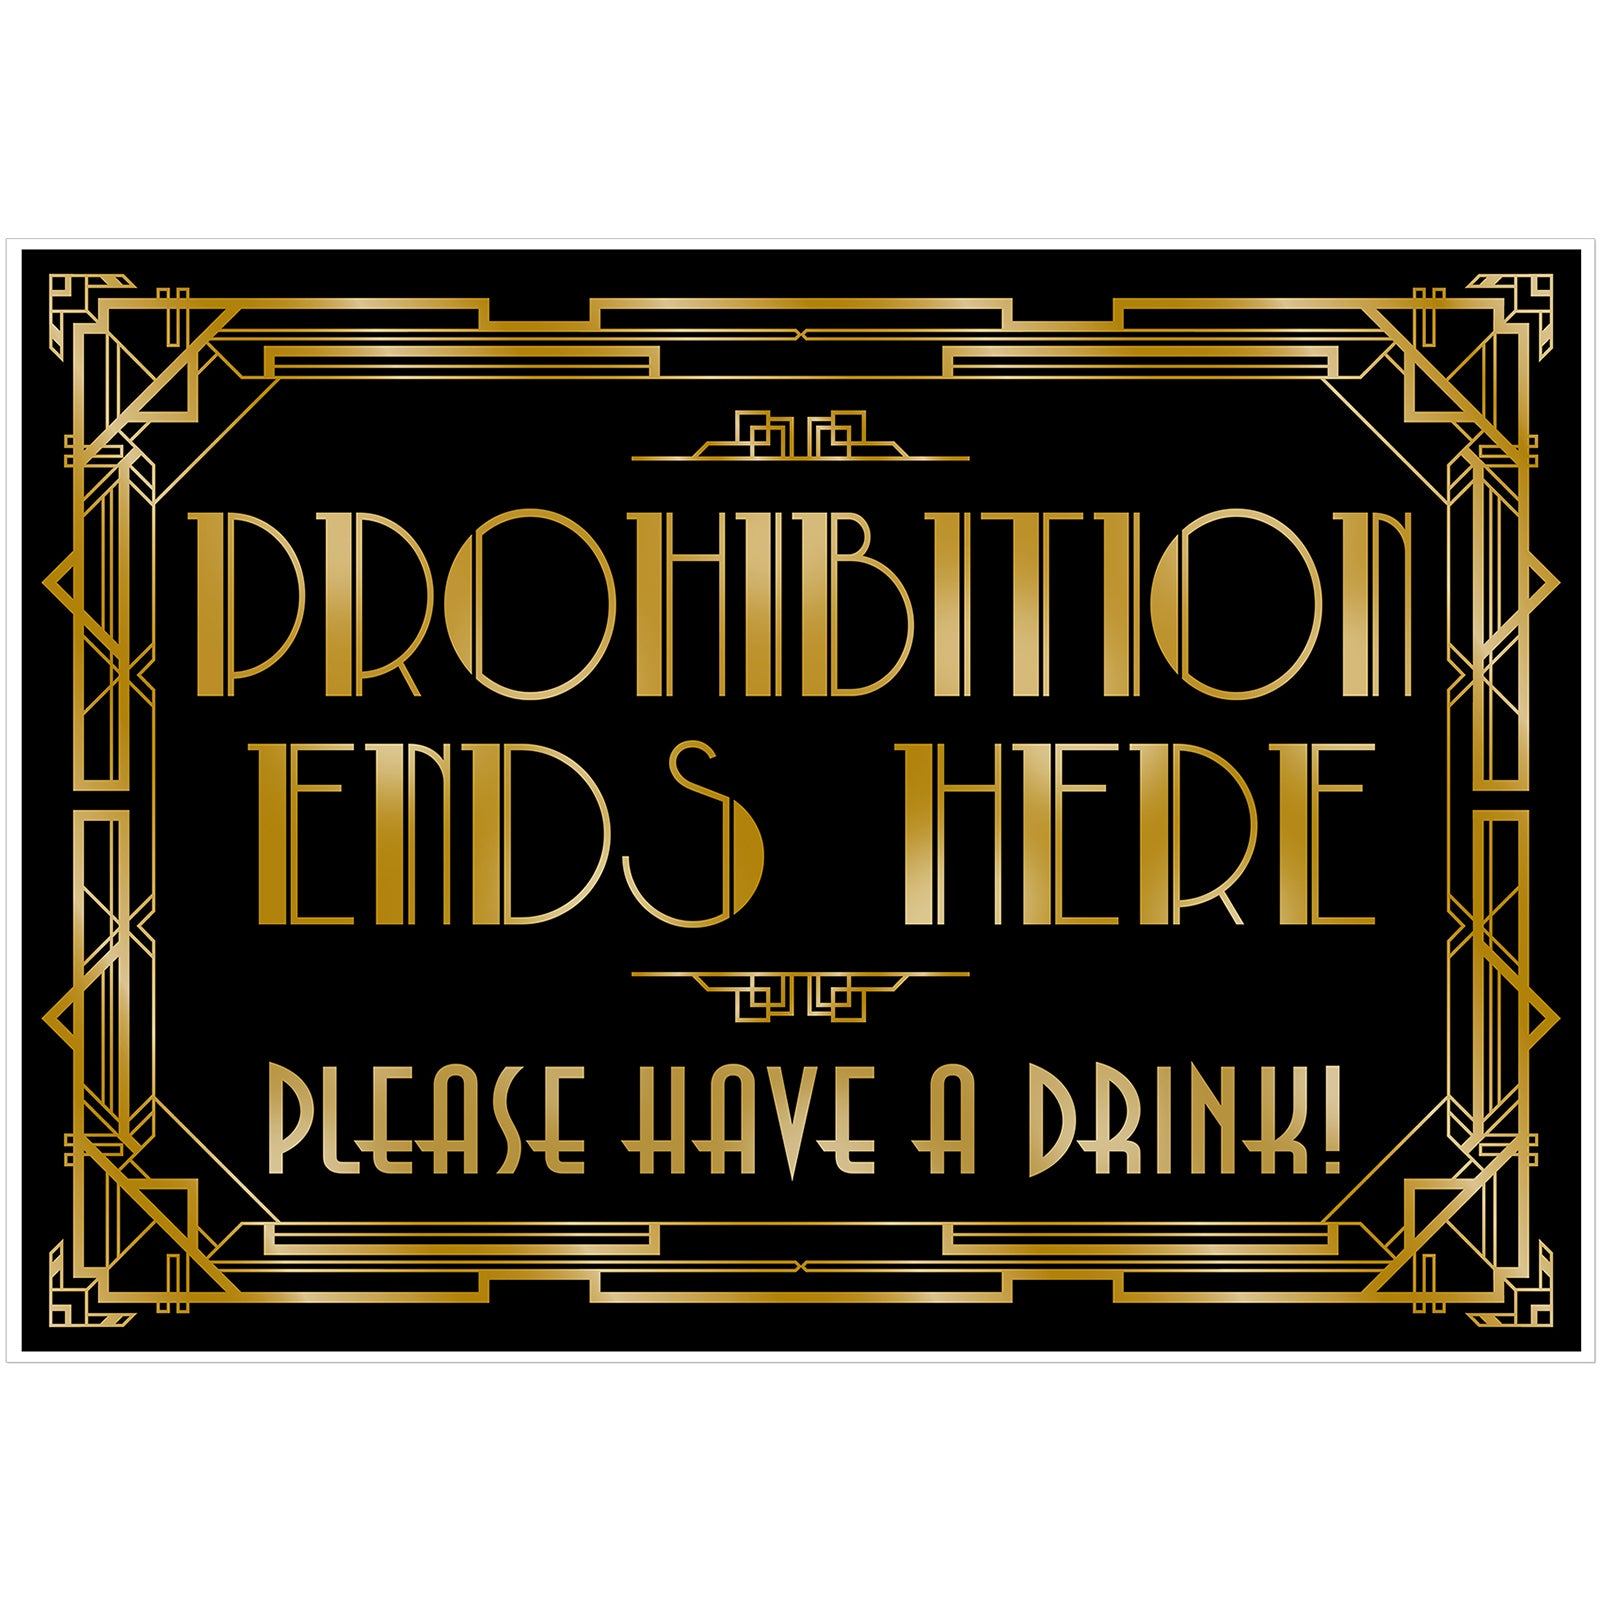 Roaring 20s Art Deco Poster|Prohibition Ends Here|16x12inch A3